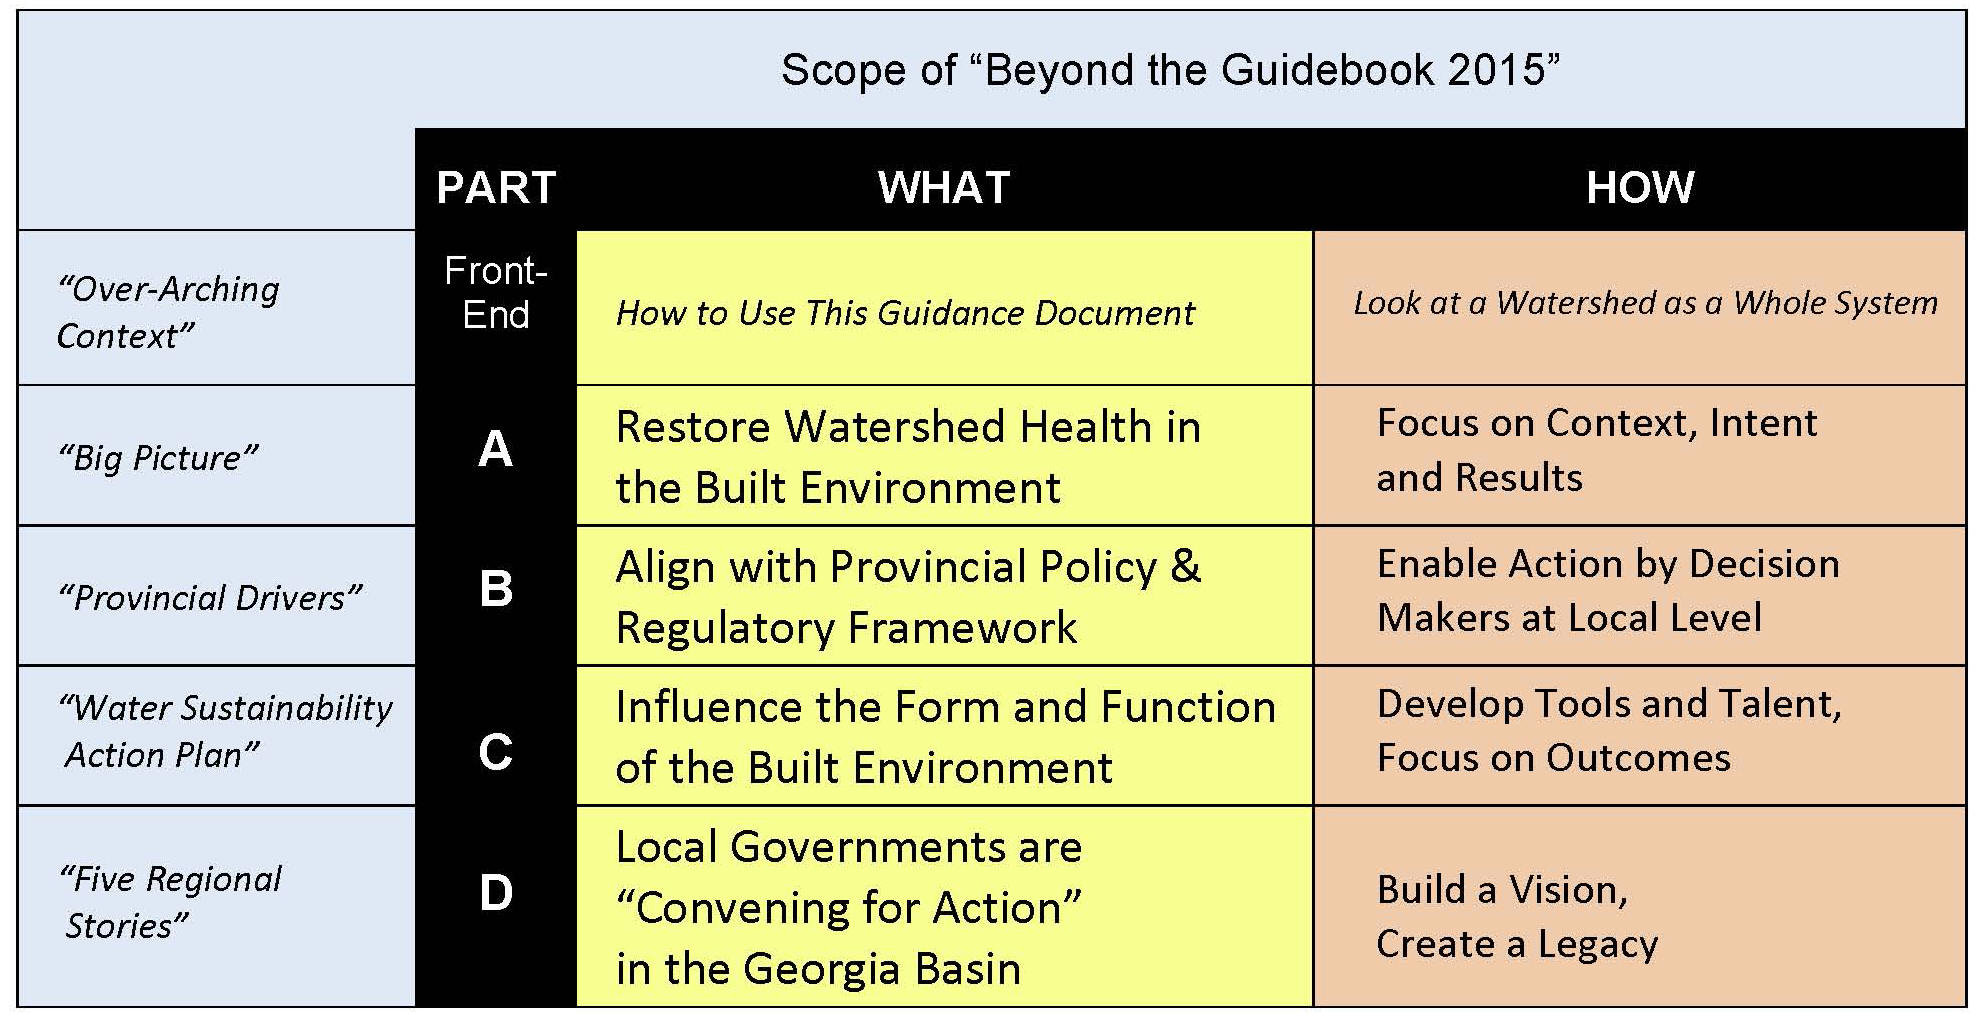 BYGB2015_scope of 4 parts